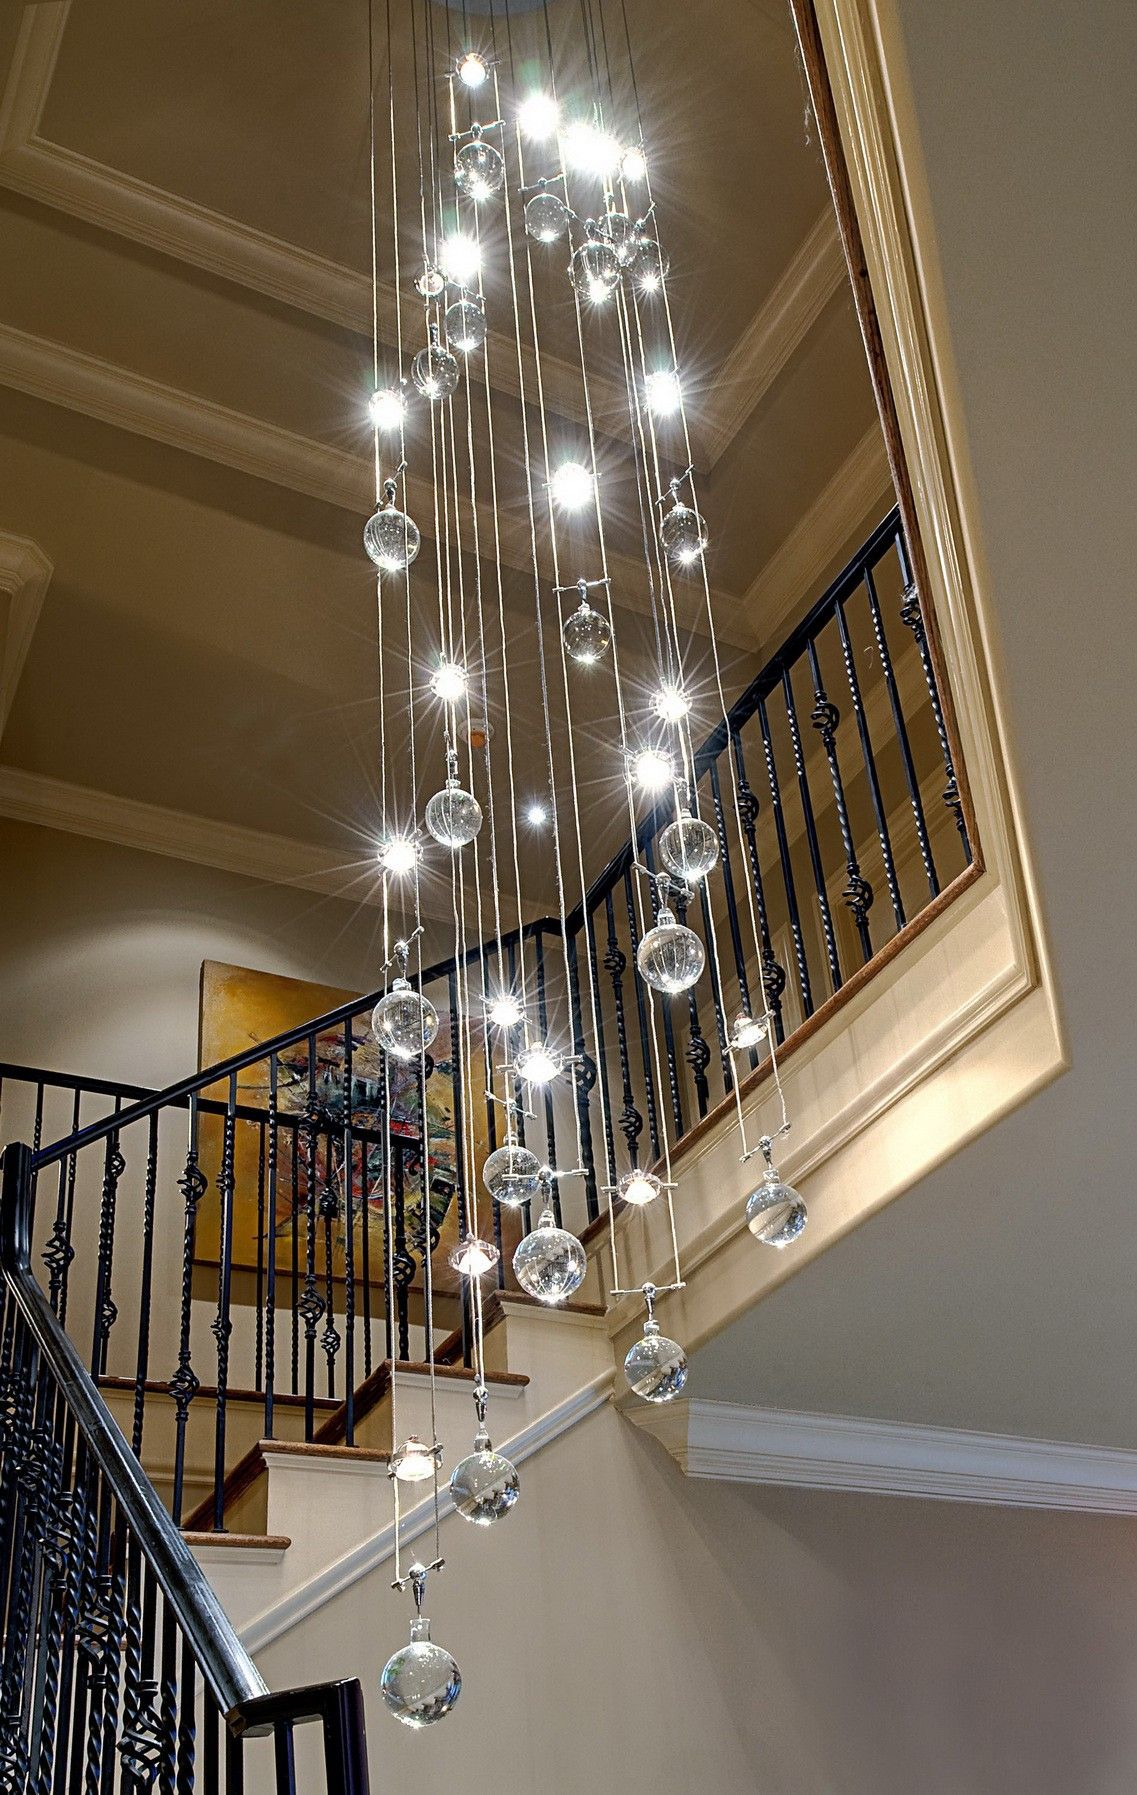 Chandelier And Foyer Ideas : Greet your guest with dazzling foyer chandeliers cool